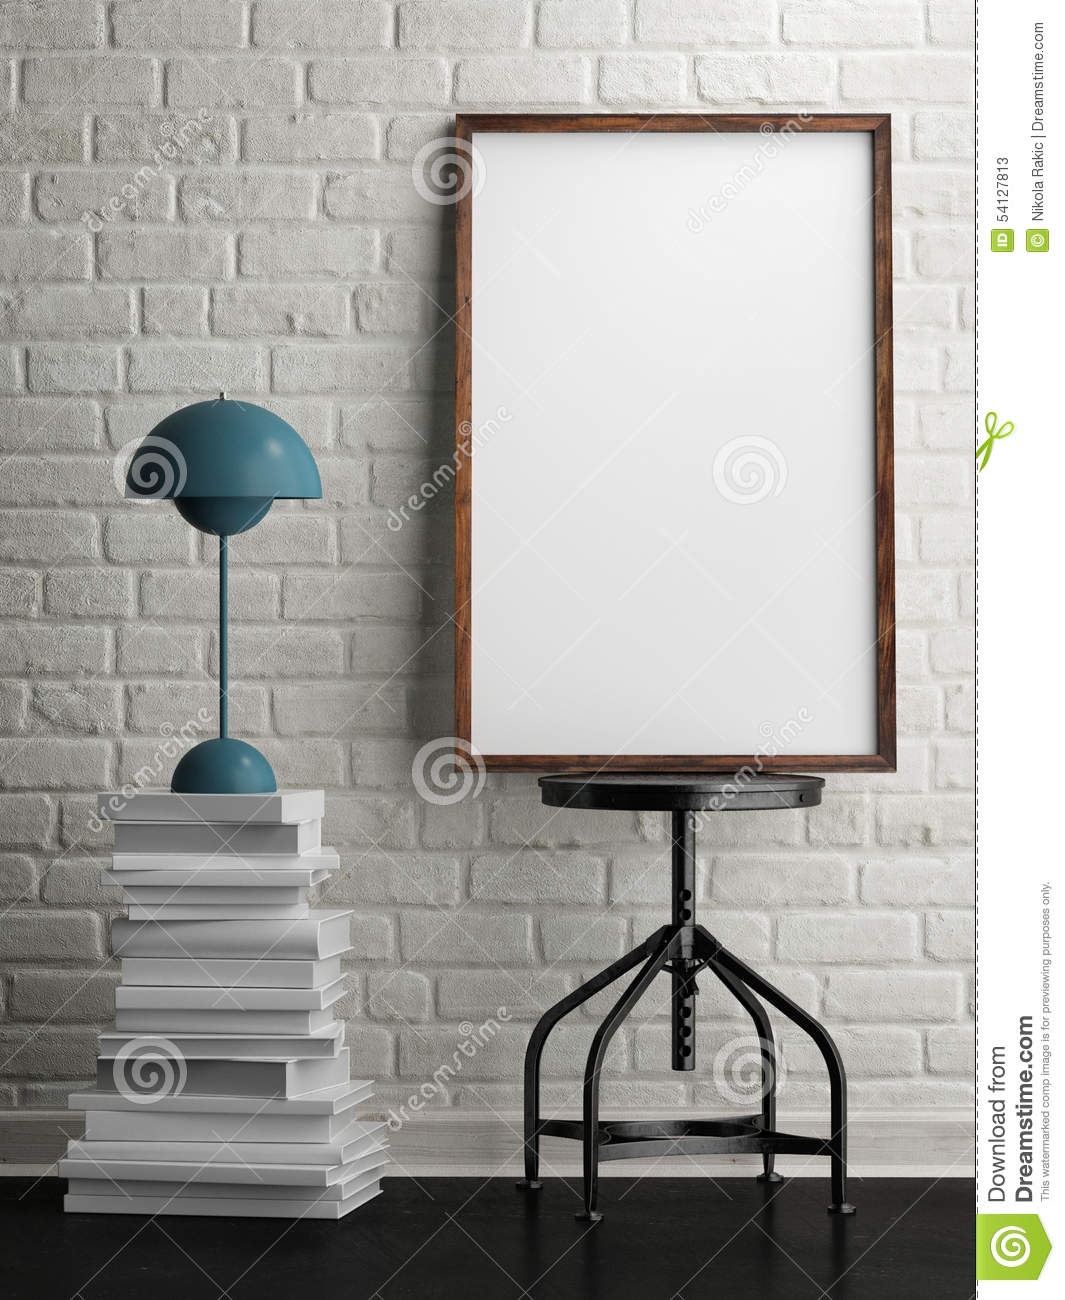 Mock Up White Frame In Room White Brick Background 3d